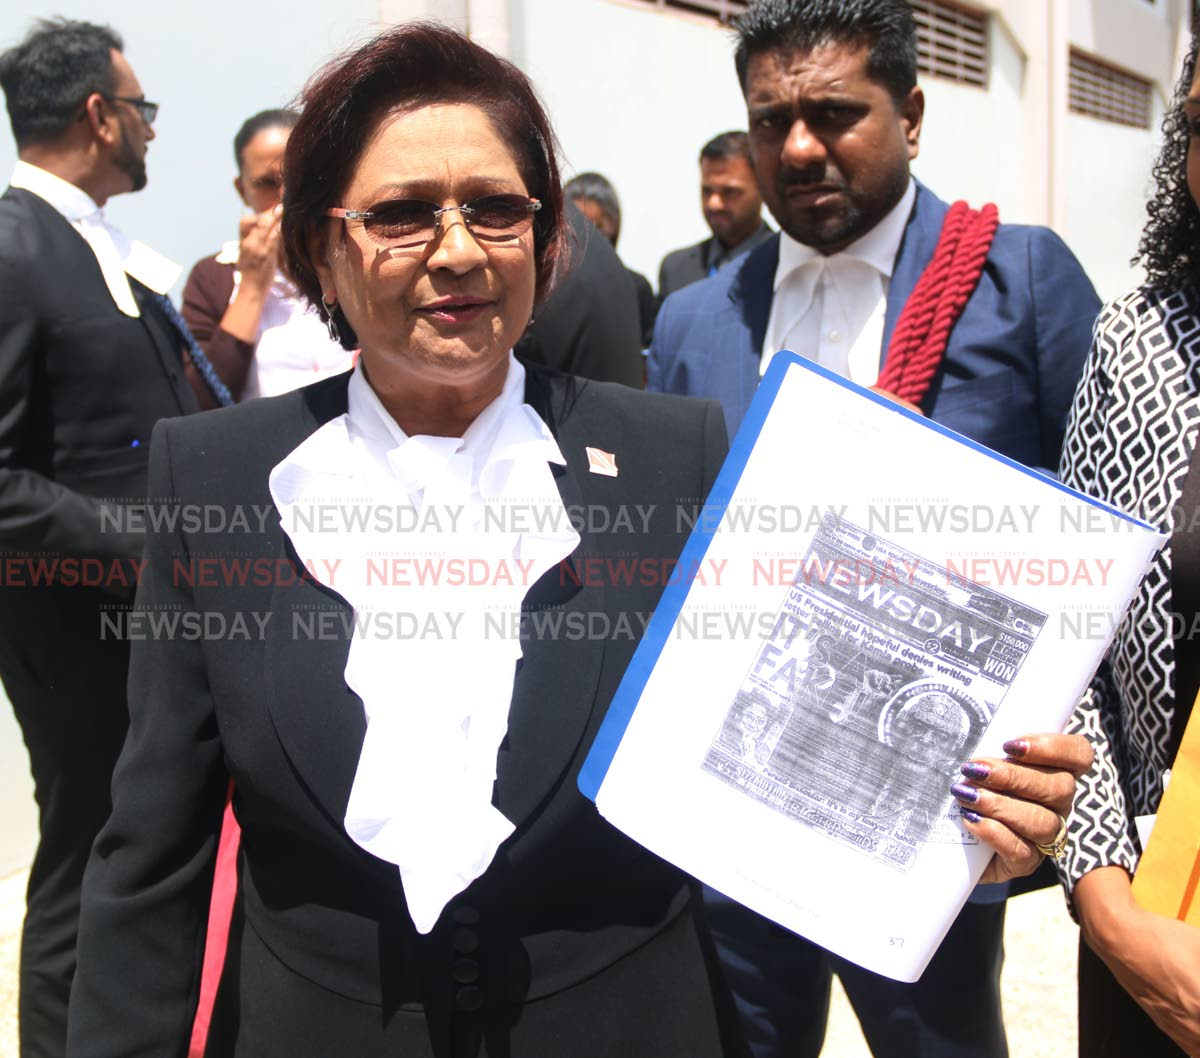 Oppostion Leader Kamla Persad-Bissessar was seen holding up the copy of a front page of Newsday which reads